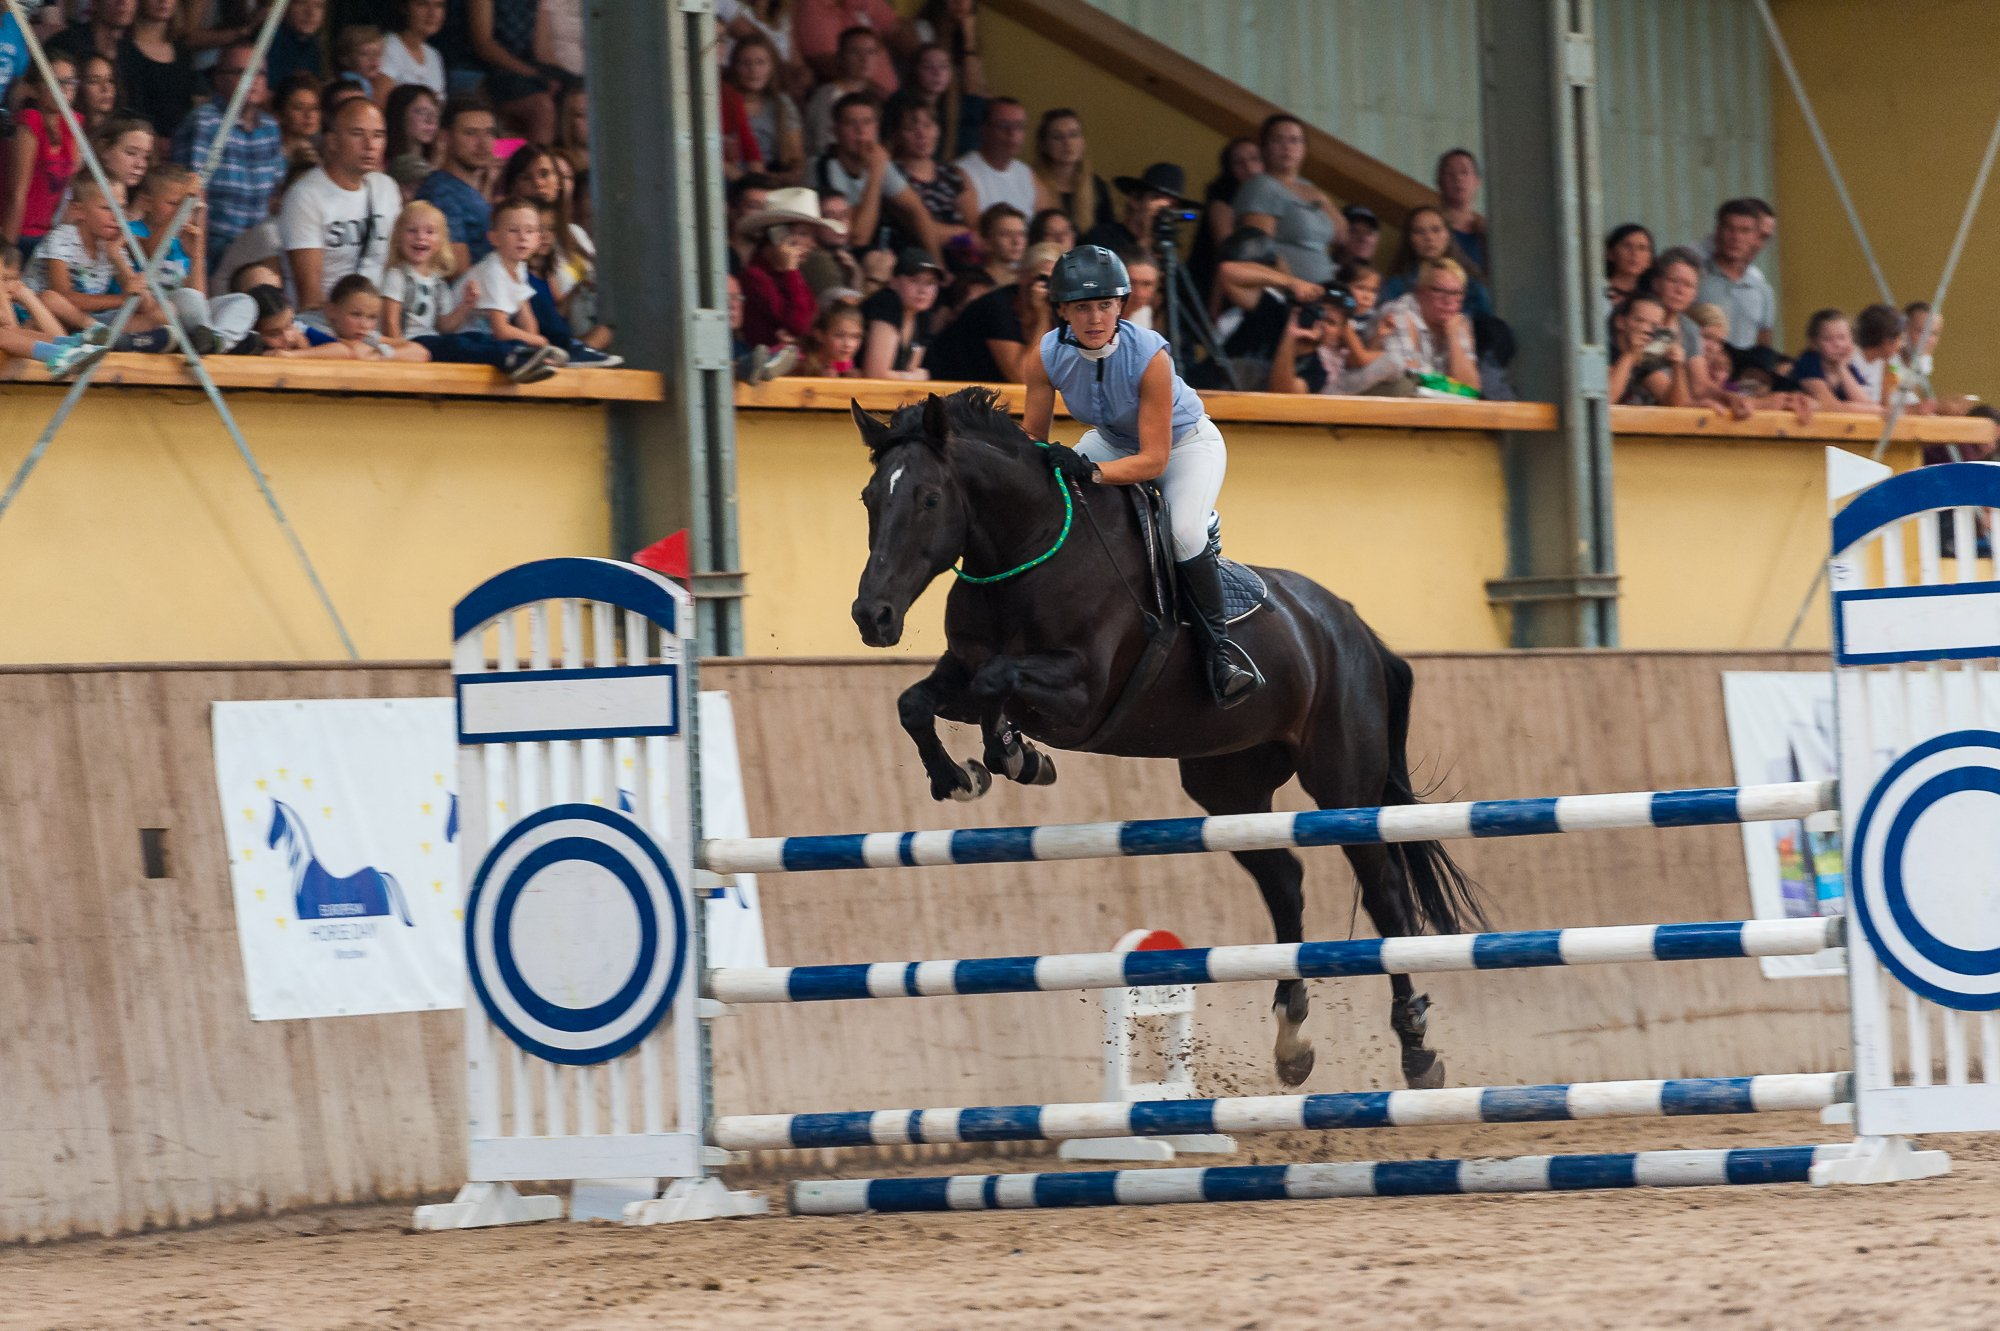 18-20/09/2020 // EURO EQUUS INTERNATIONAL BRIDLELESS RIDING CHAMPIONSHIPS